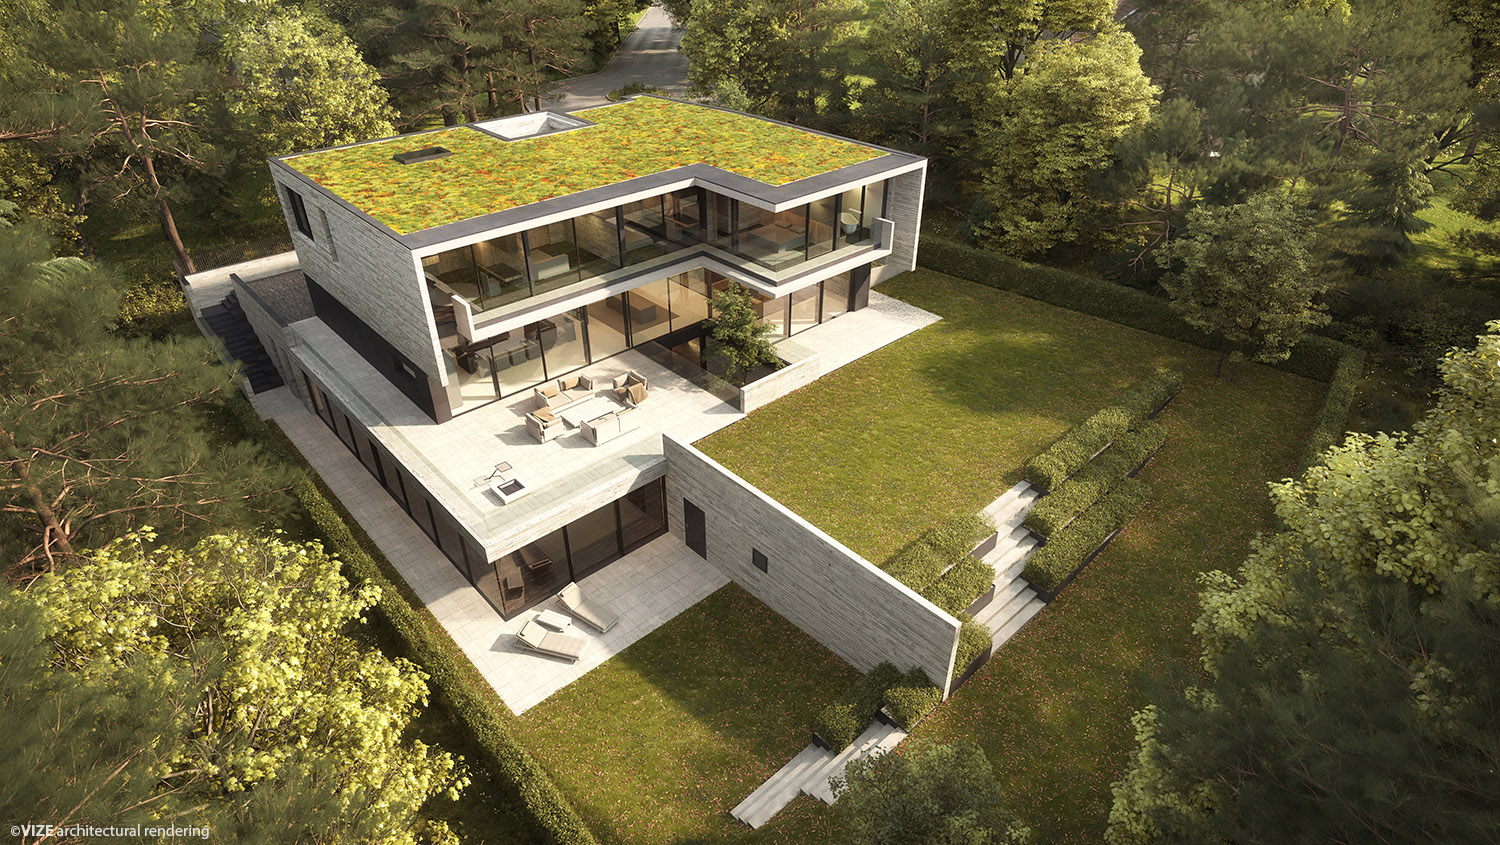 top view of the project VIZE architectural rendering}